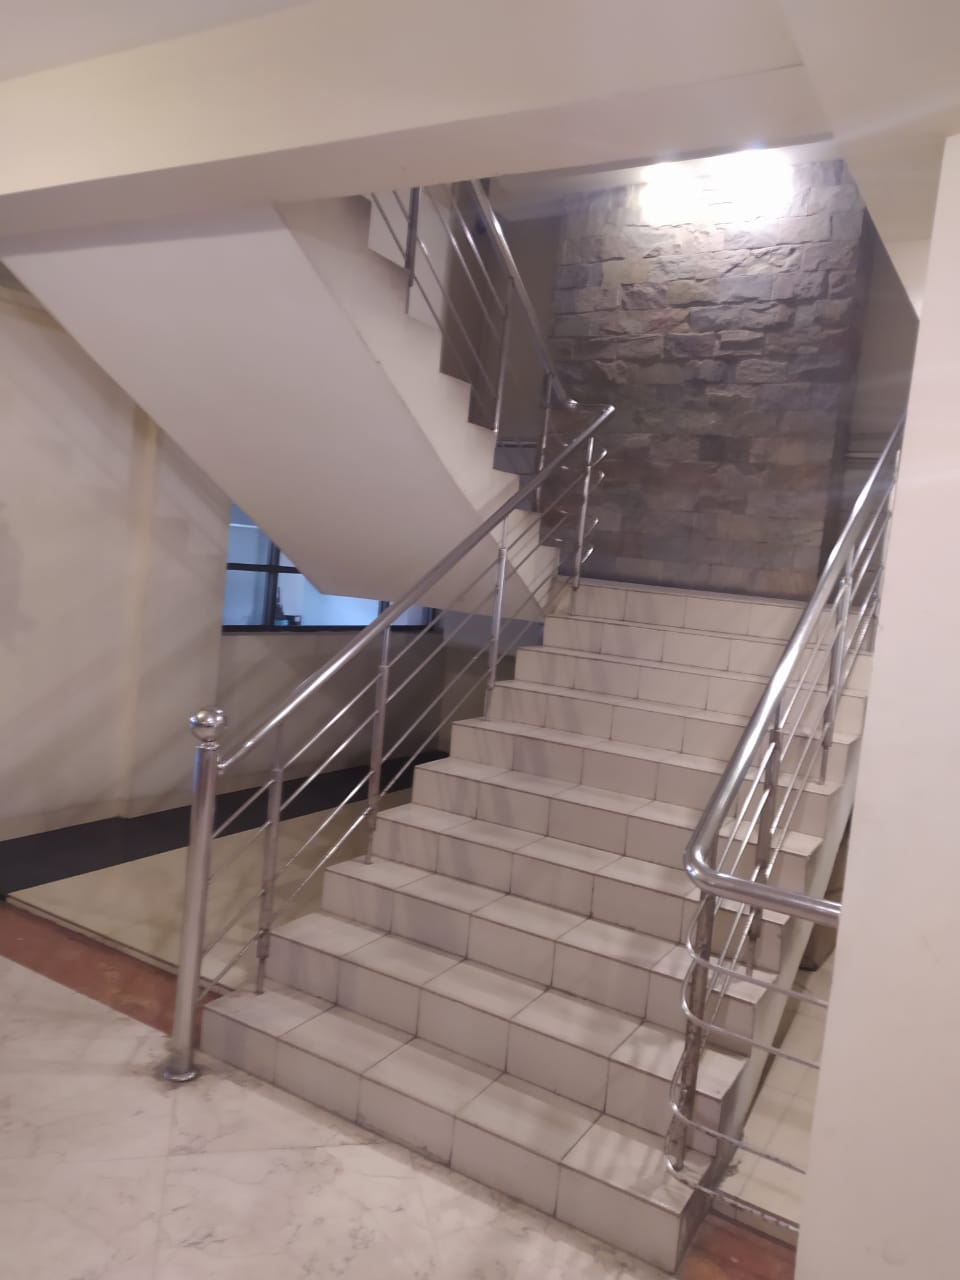 2495-sft-apartment-for-rent-in-north-khulshi-chittagong-5th-floor-245315